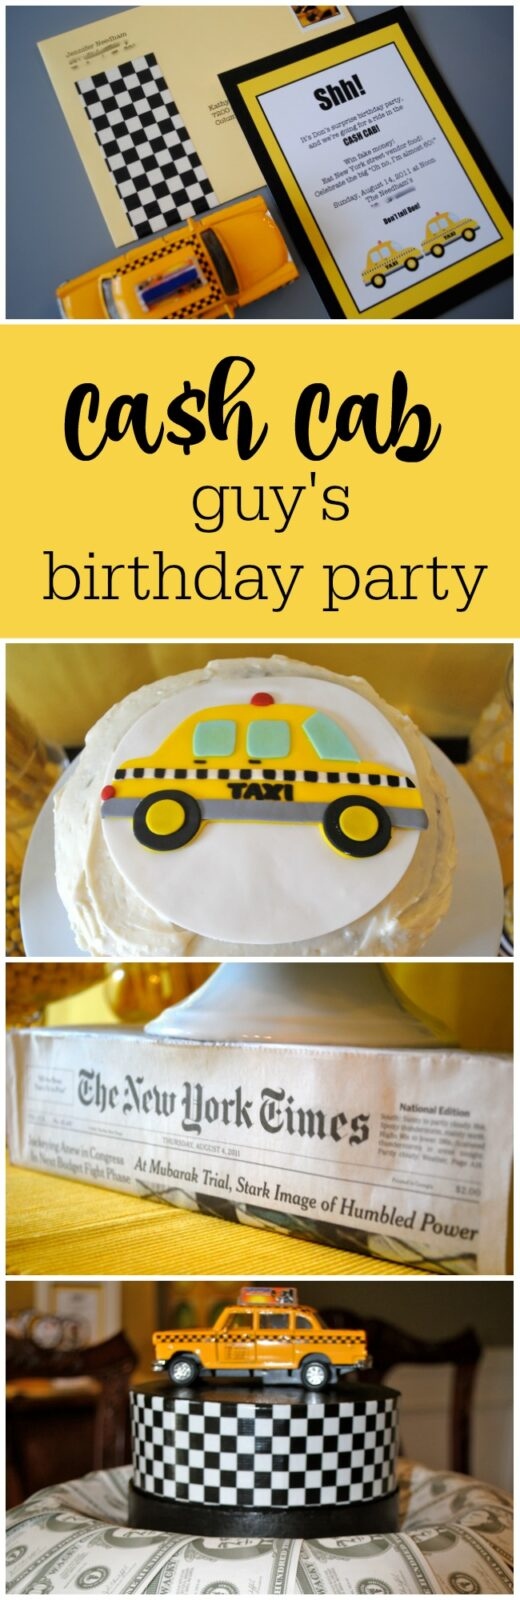 Cash Cab guy's birthday party by The Party Teacher